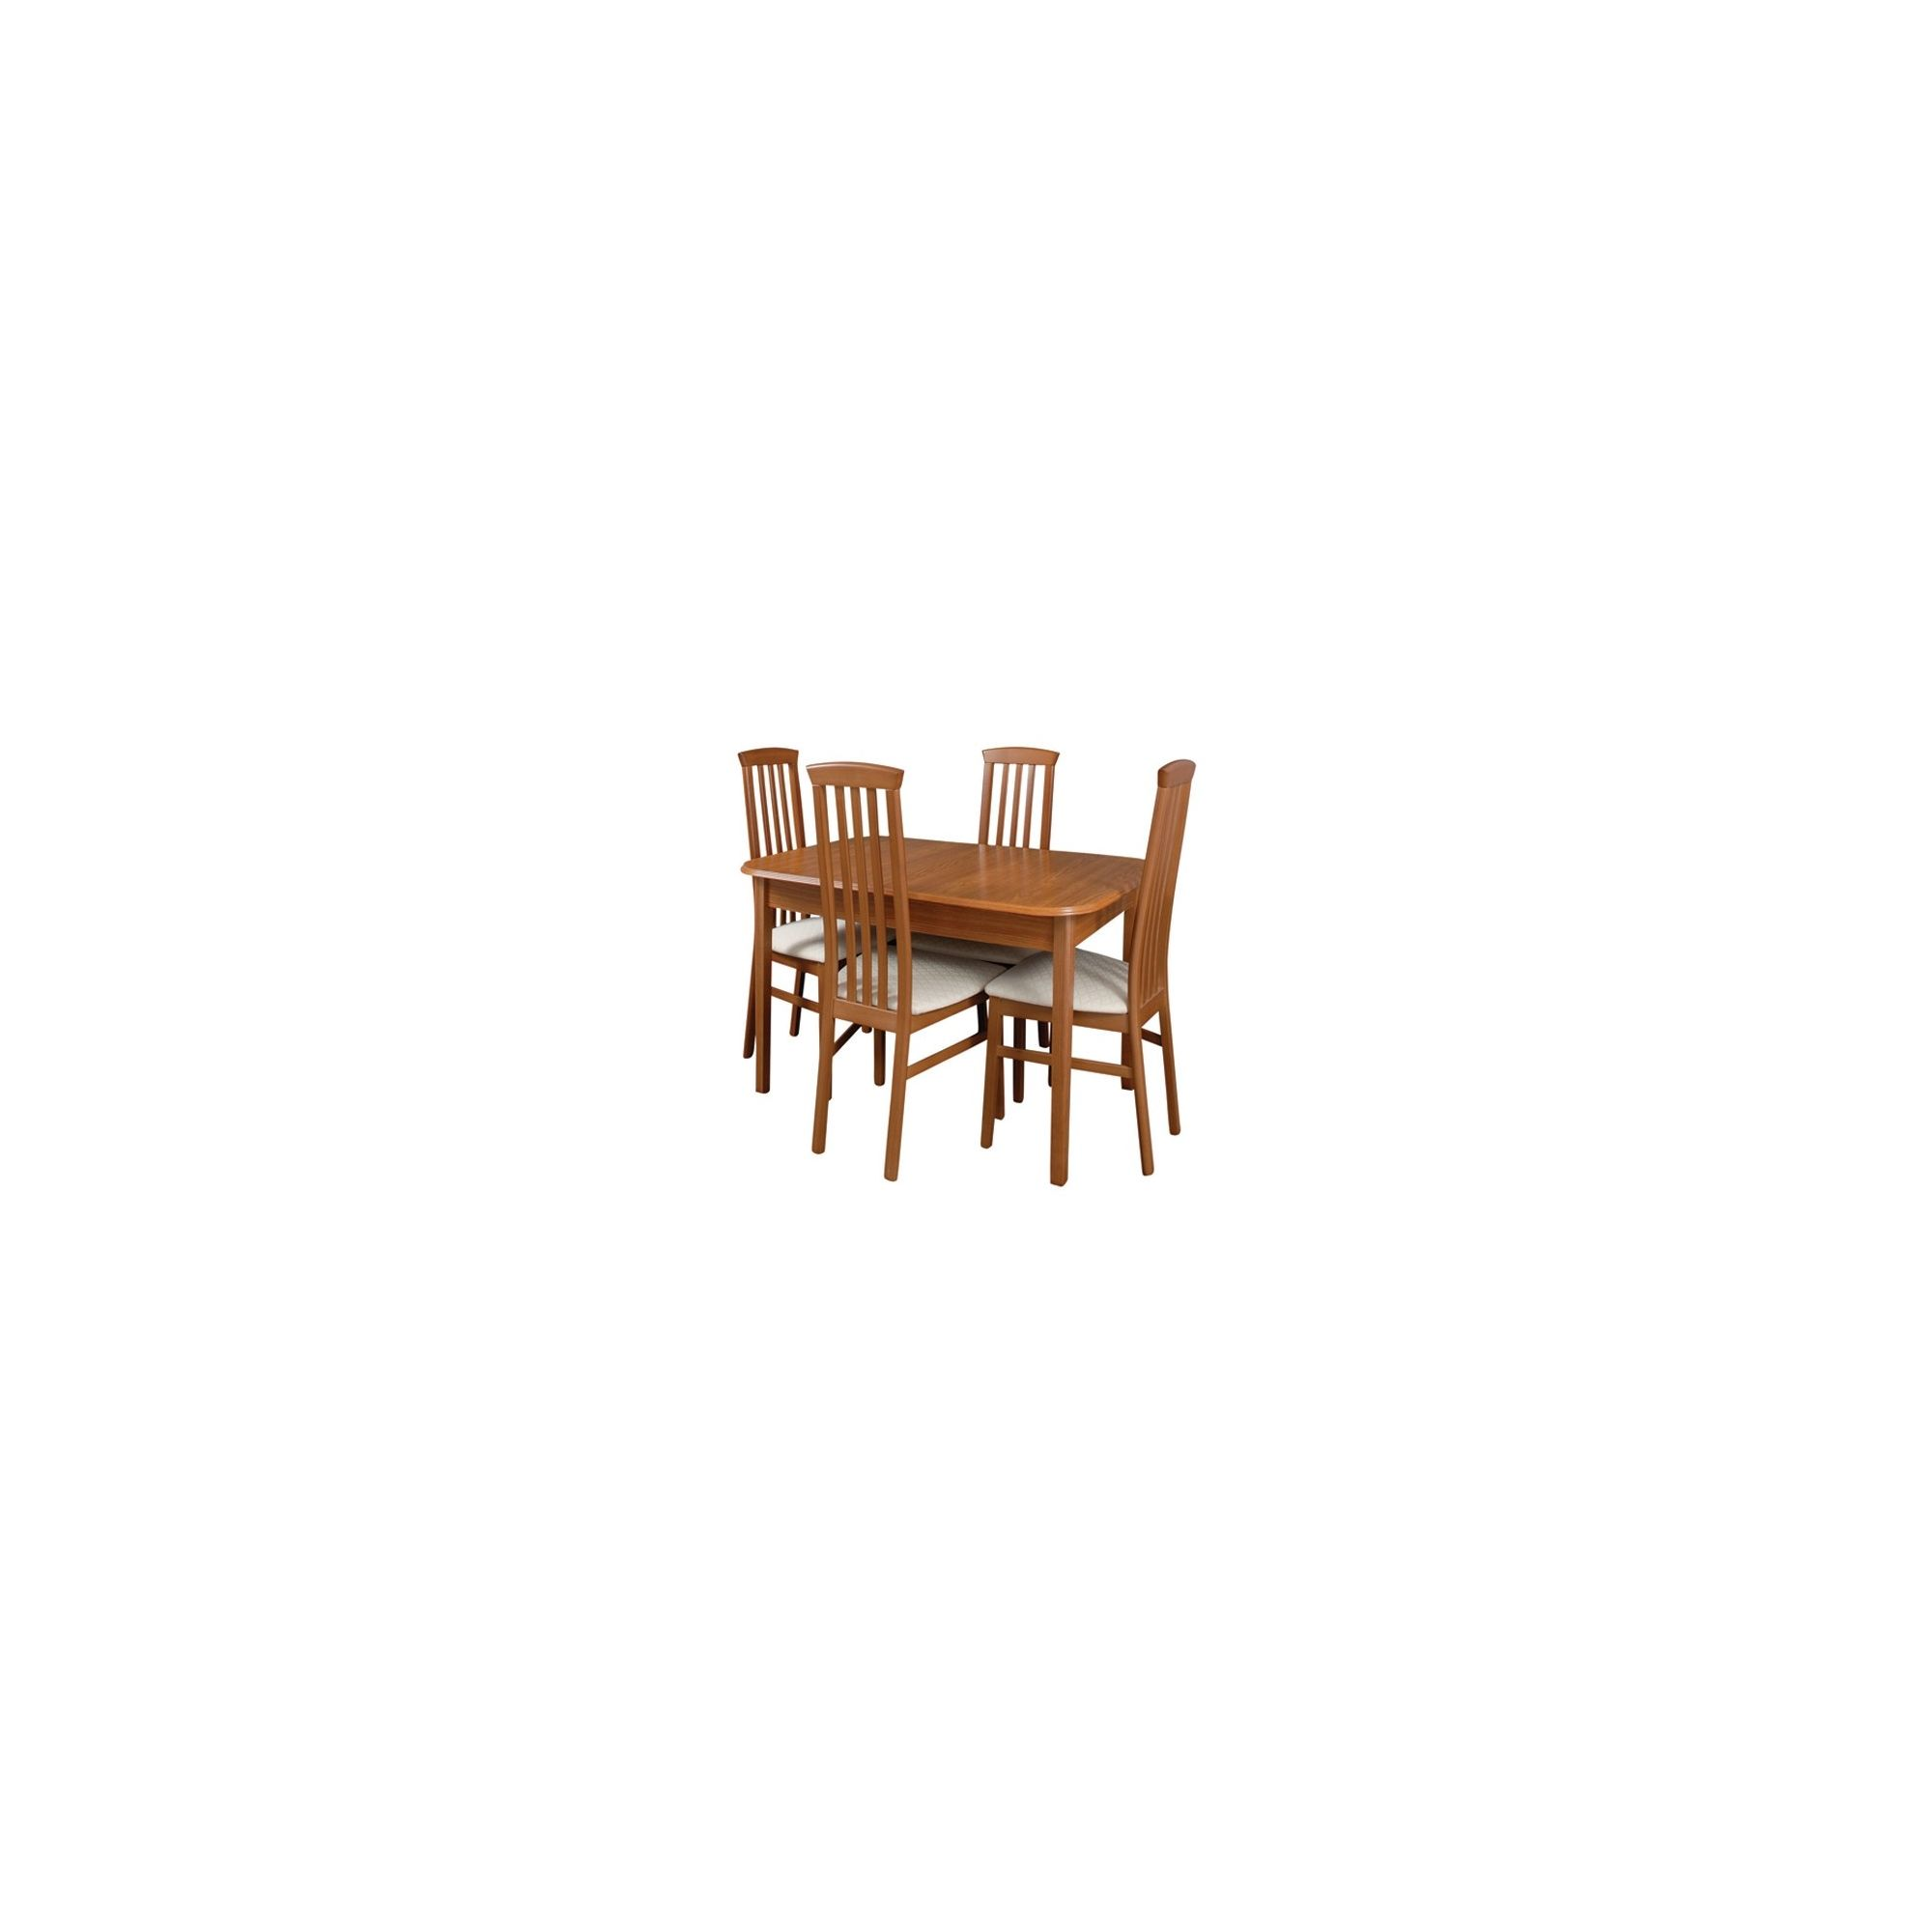 Caxton Lichfield 4 Leg Compact 4 Chair Extending Dining Set at Tesco Direct